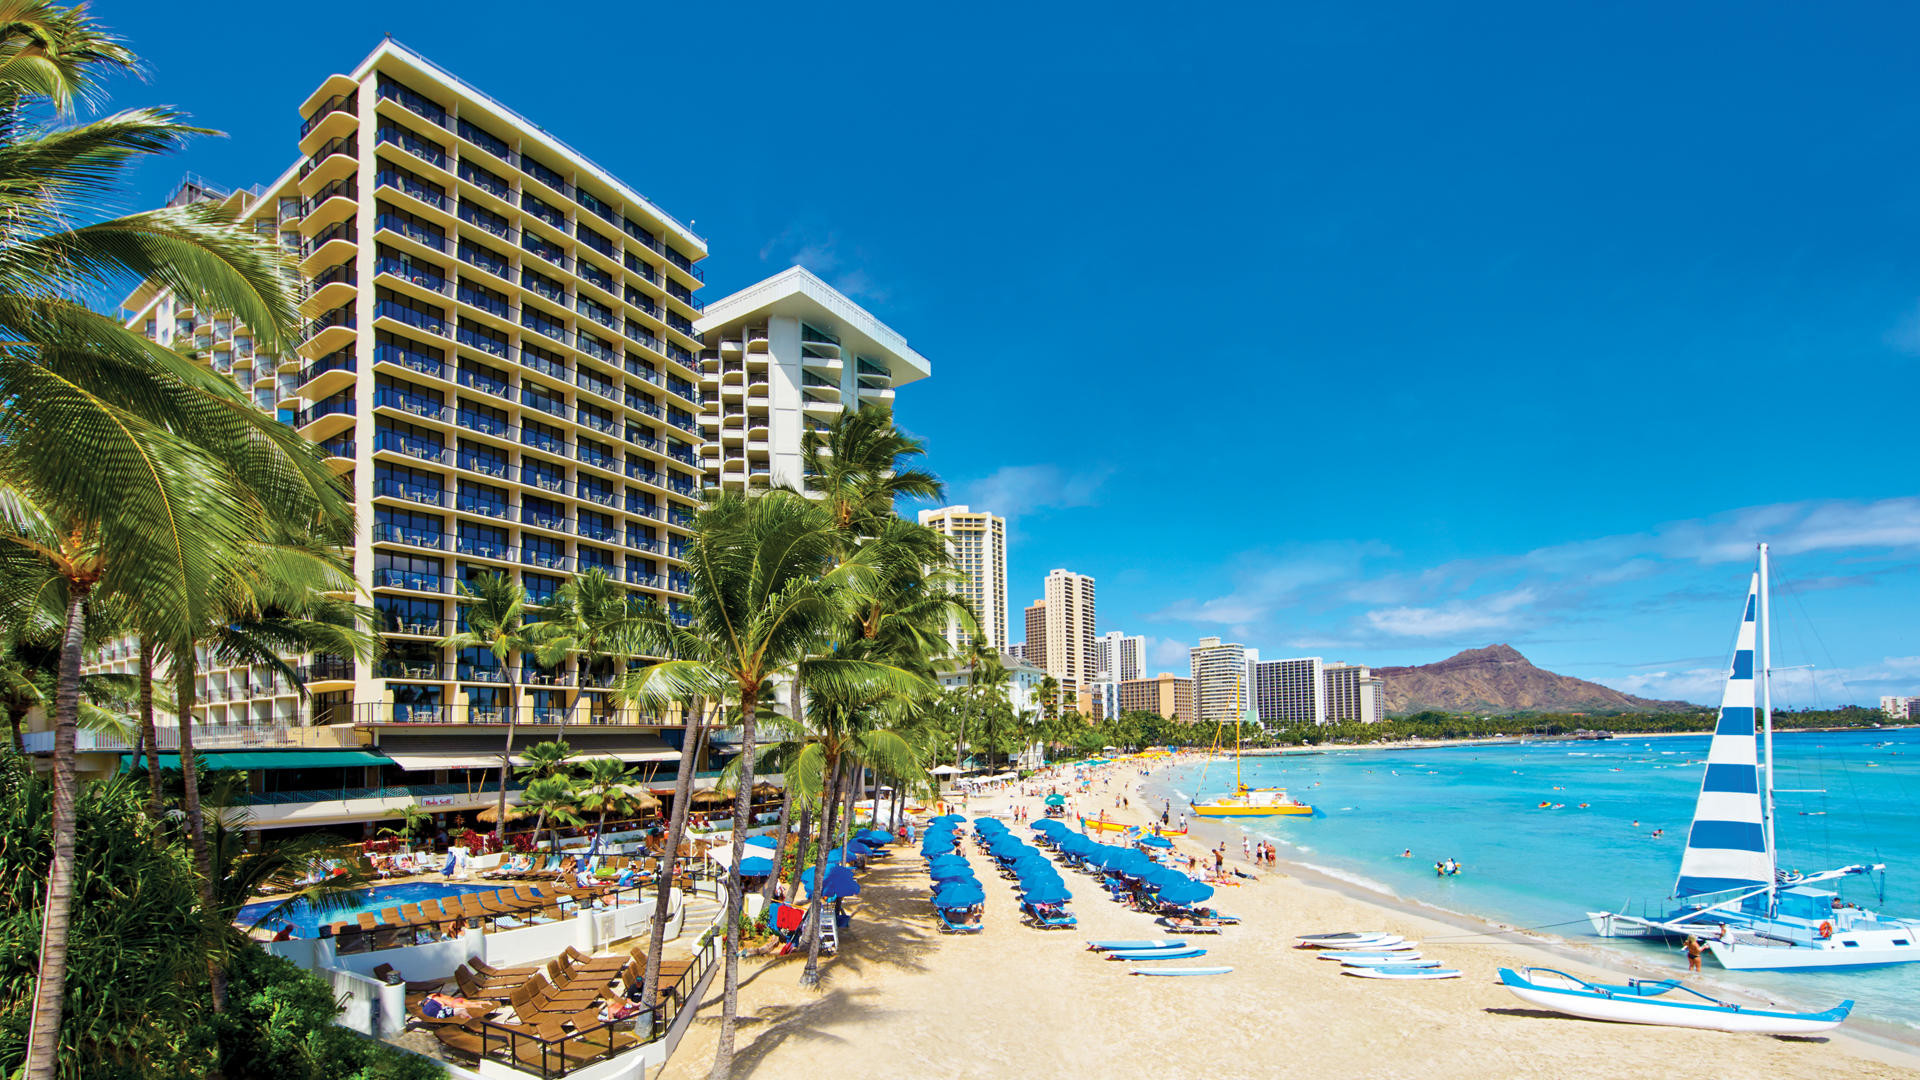 Waikiki Beach Wallpaper 60 Images